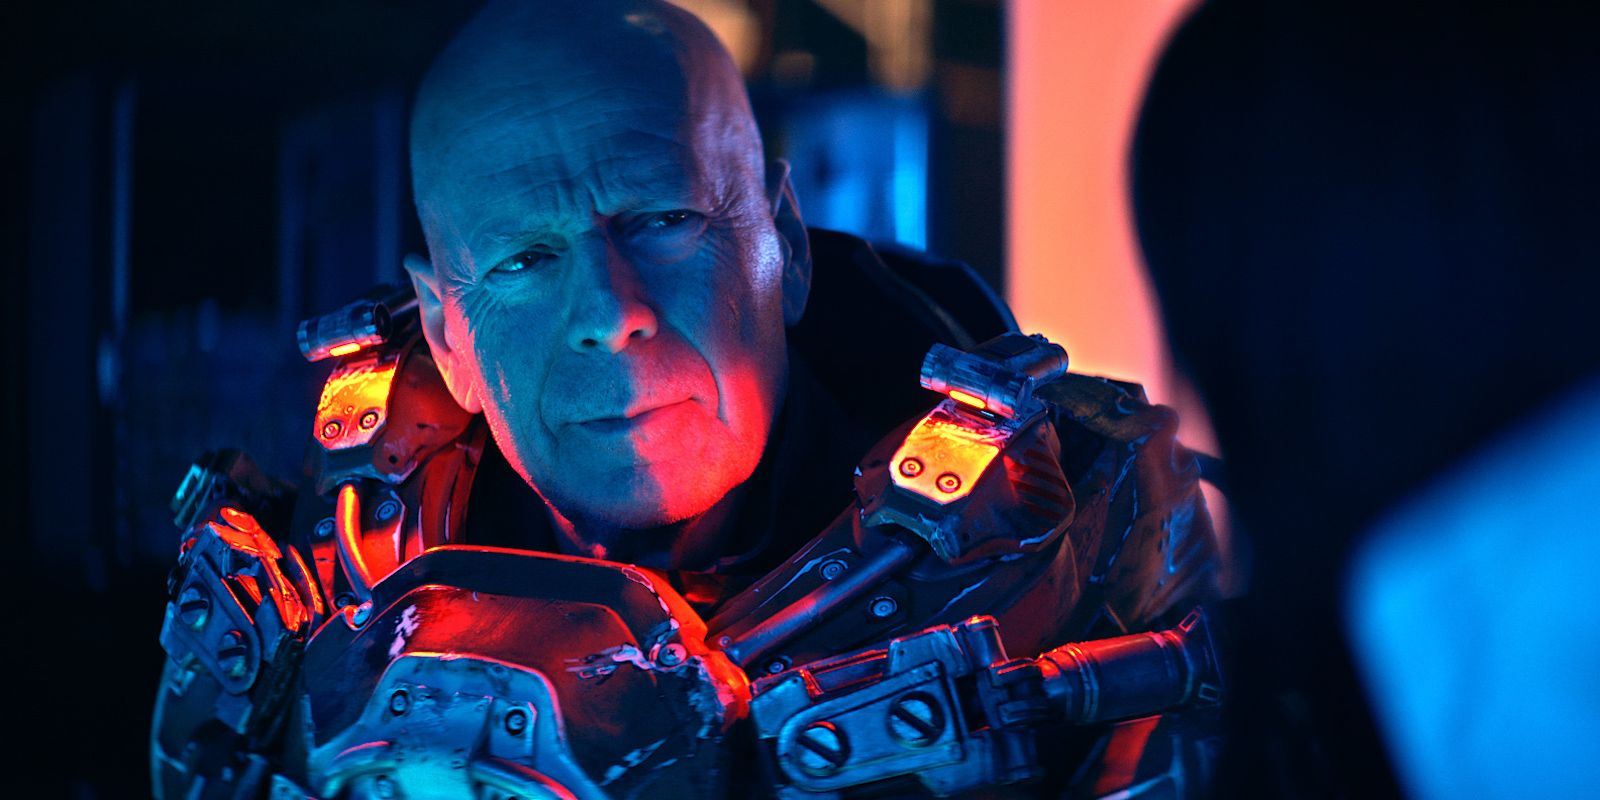 REVIEW: Bruce Willis' Cosmic Sin Is an Apt Title for This Sci-Fi Action Debacle